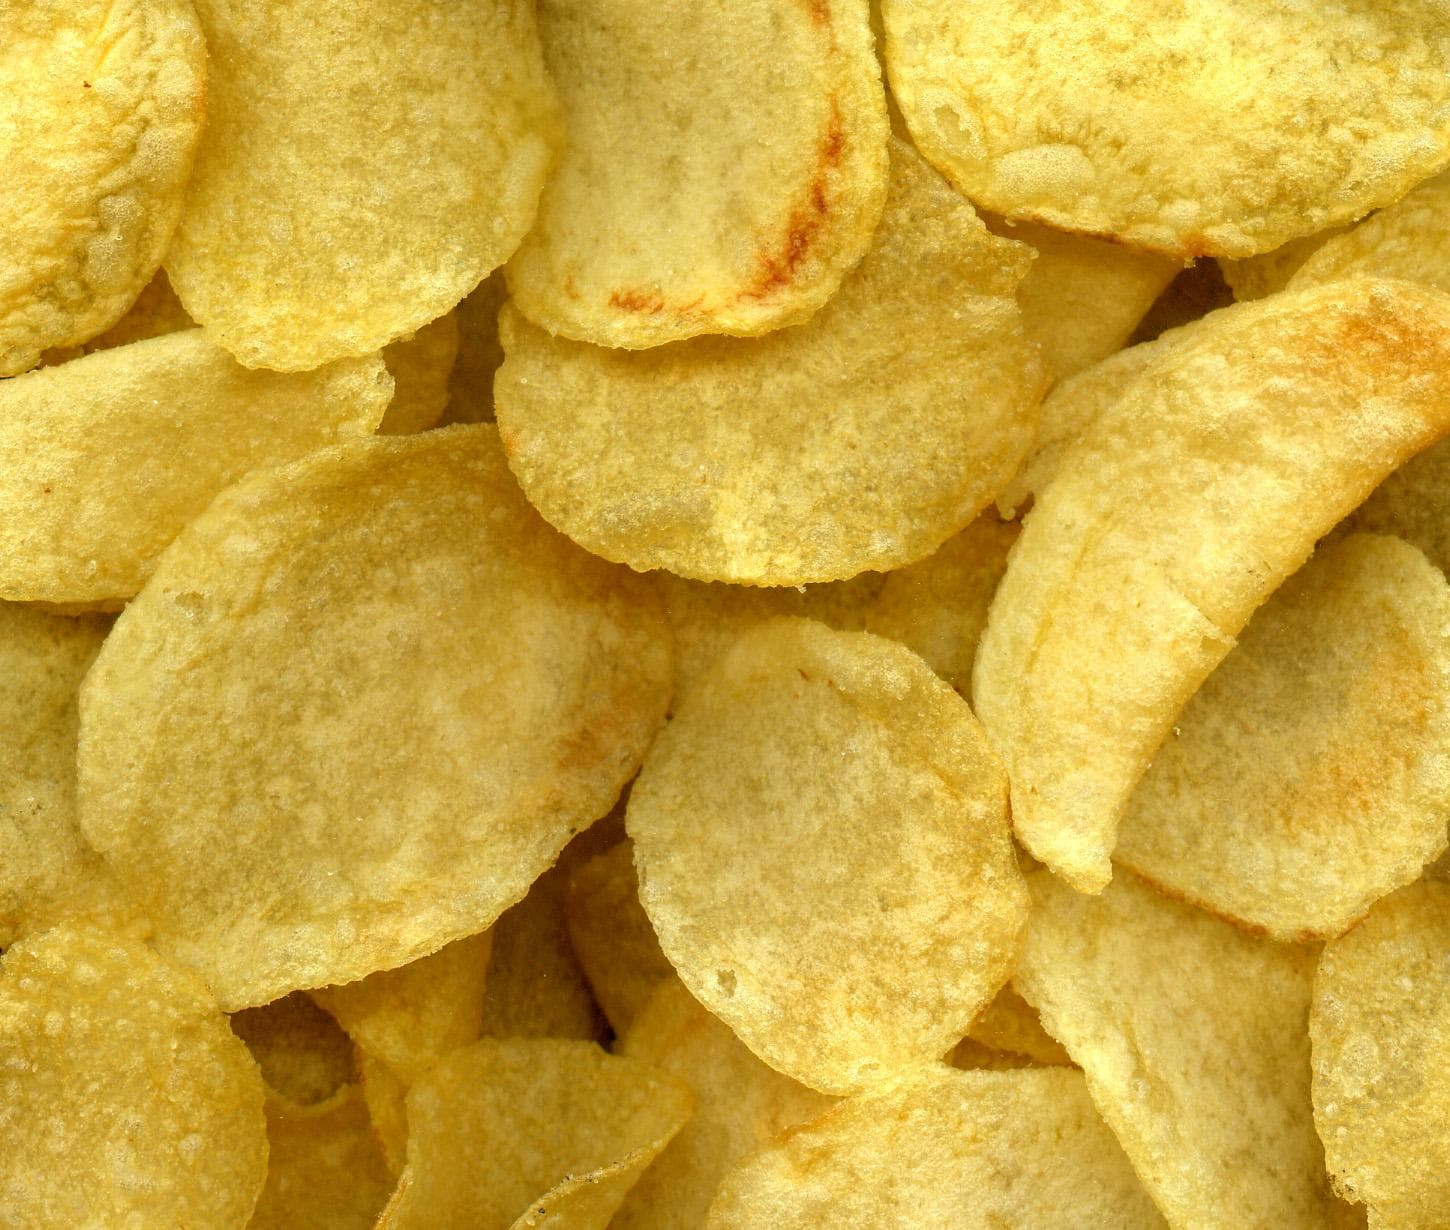 Potato chip on Random Most Delicious Foods to Dunk of Deep Fry